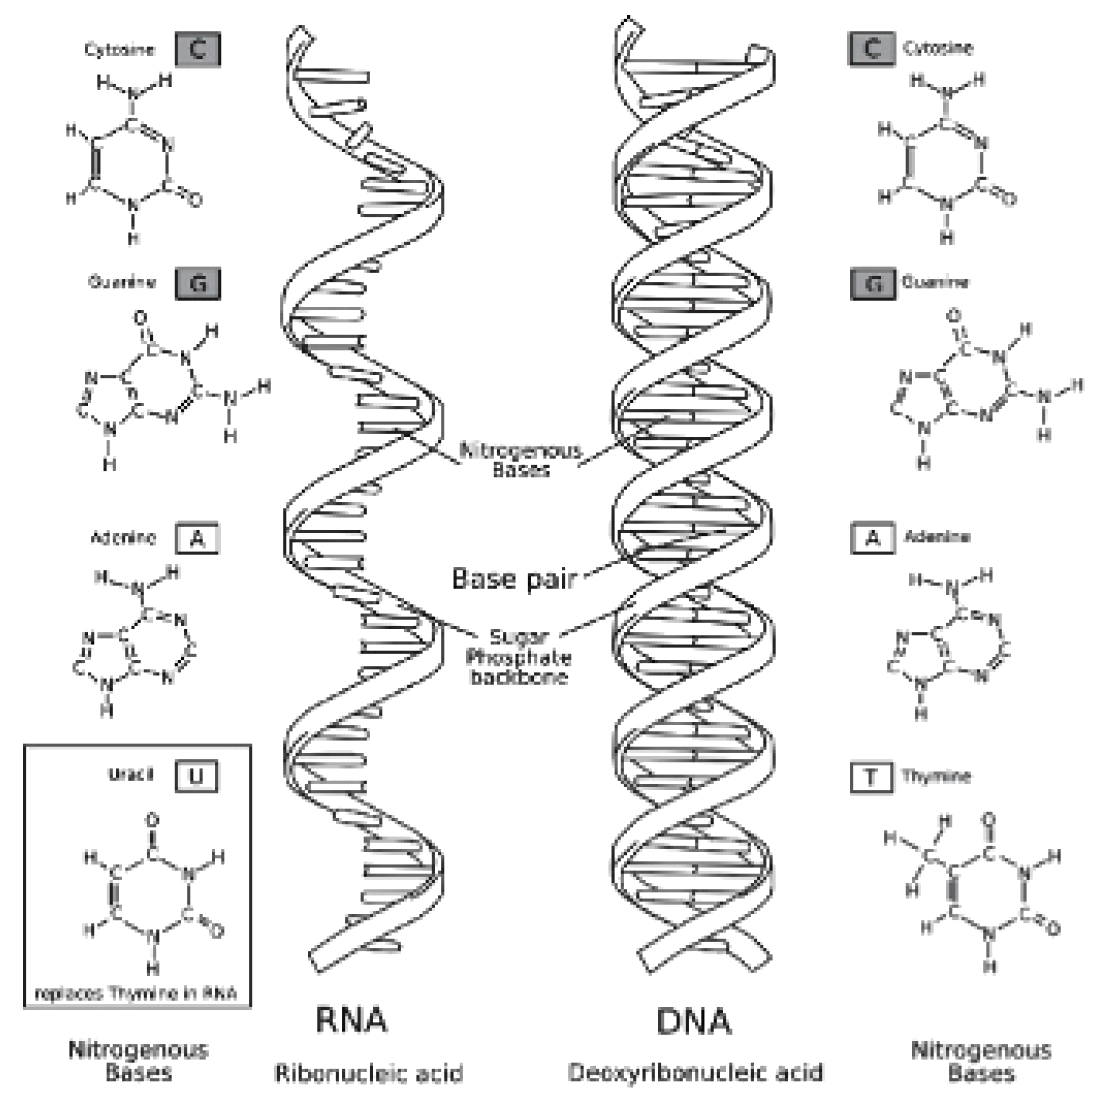 ... Worksheet additionally DNA Replication Coloring Worksheet. on dna